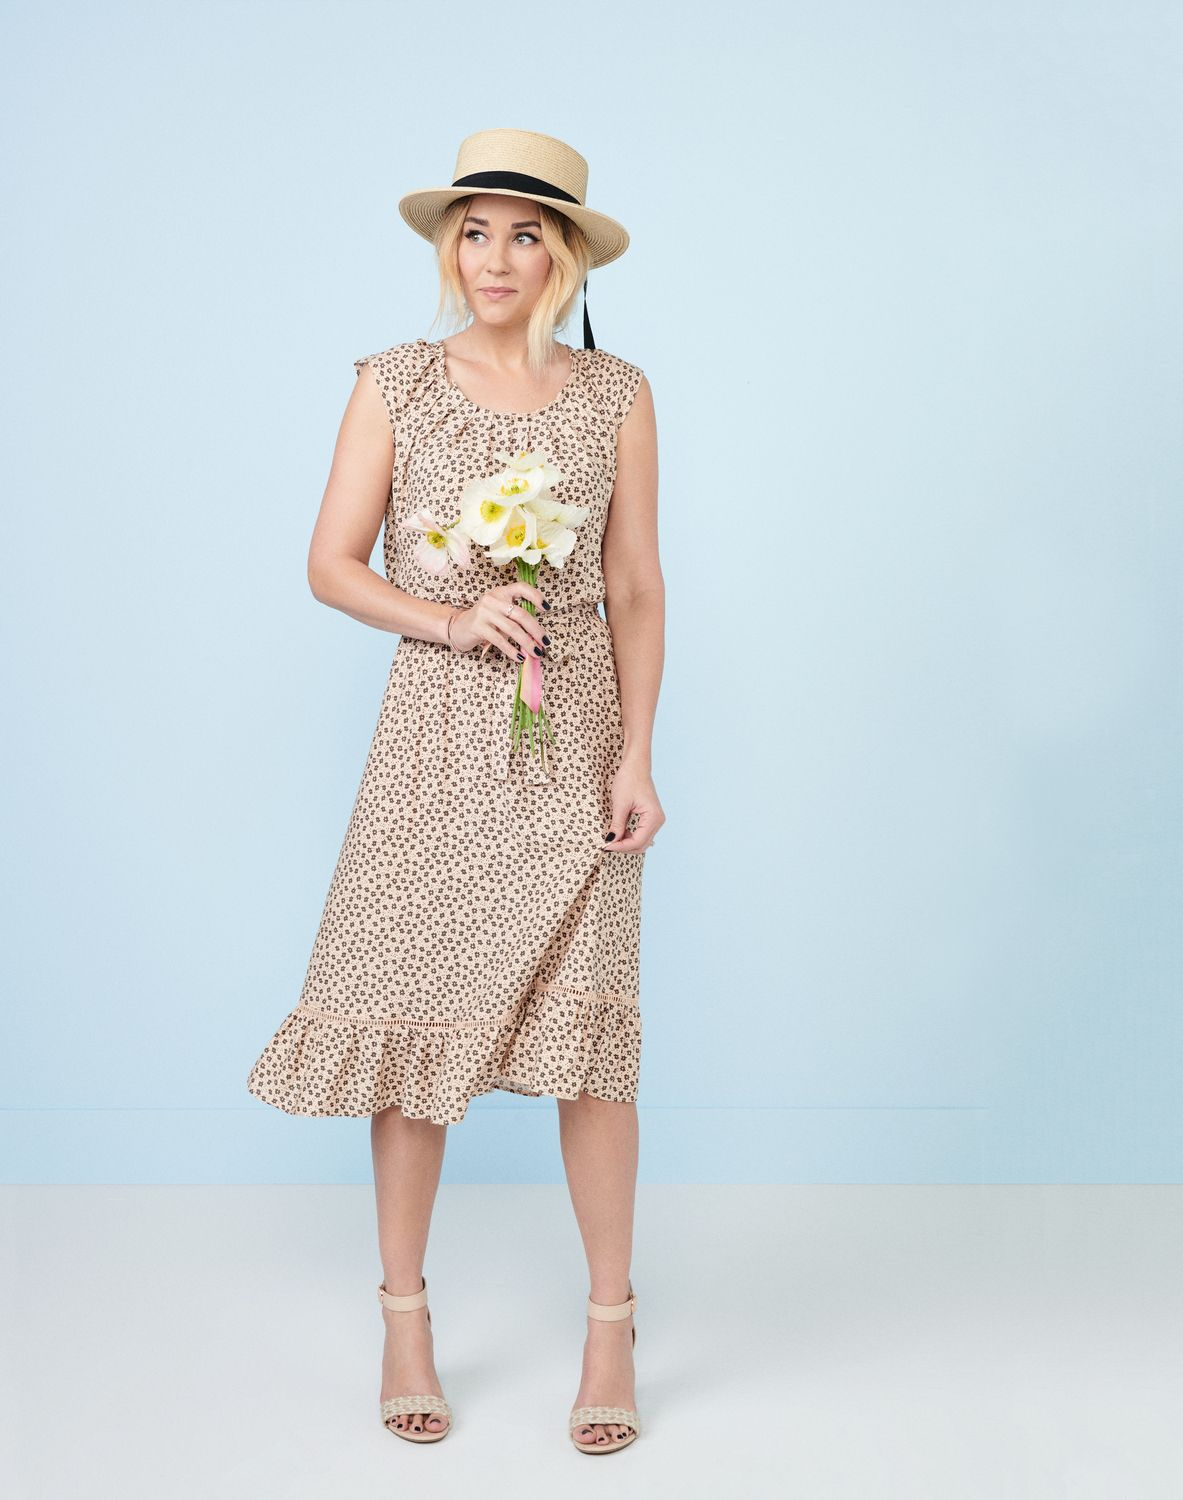 Spring Called, and It Wants You to Wear These Adorbs New Pieces From Lauren Conrad's New Collection